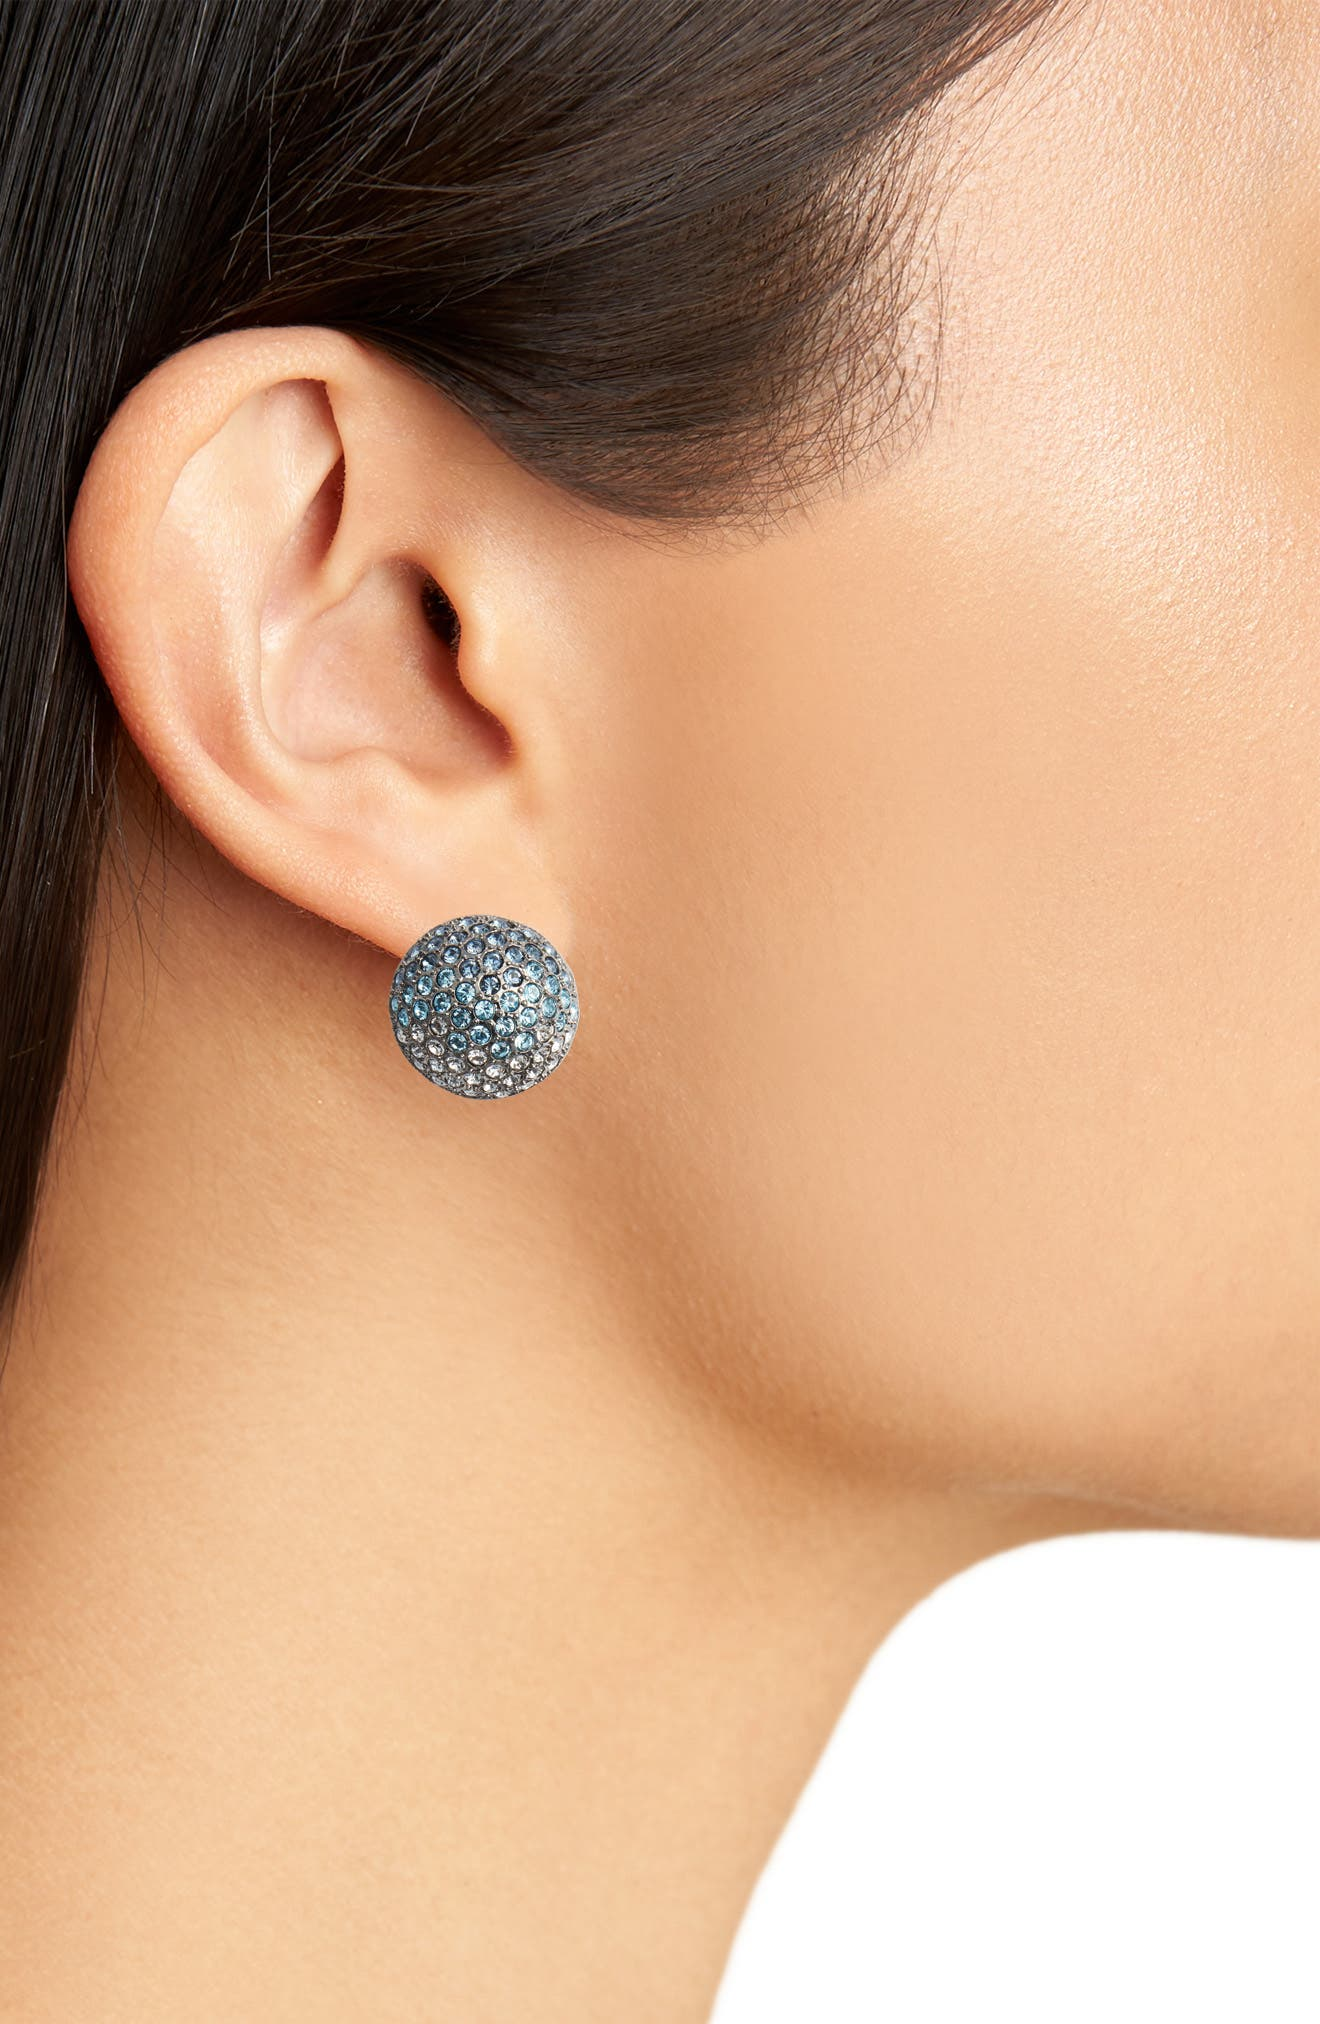 Medium Pavé Button Clip Earrings,                             Alternate thumbnail 2, color,                             Black/ Ombre Denim Blue Multi